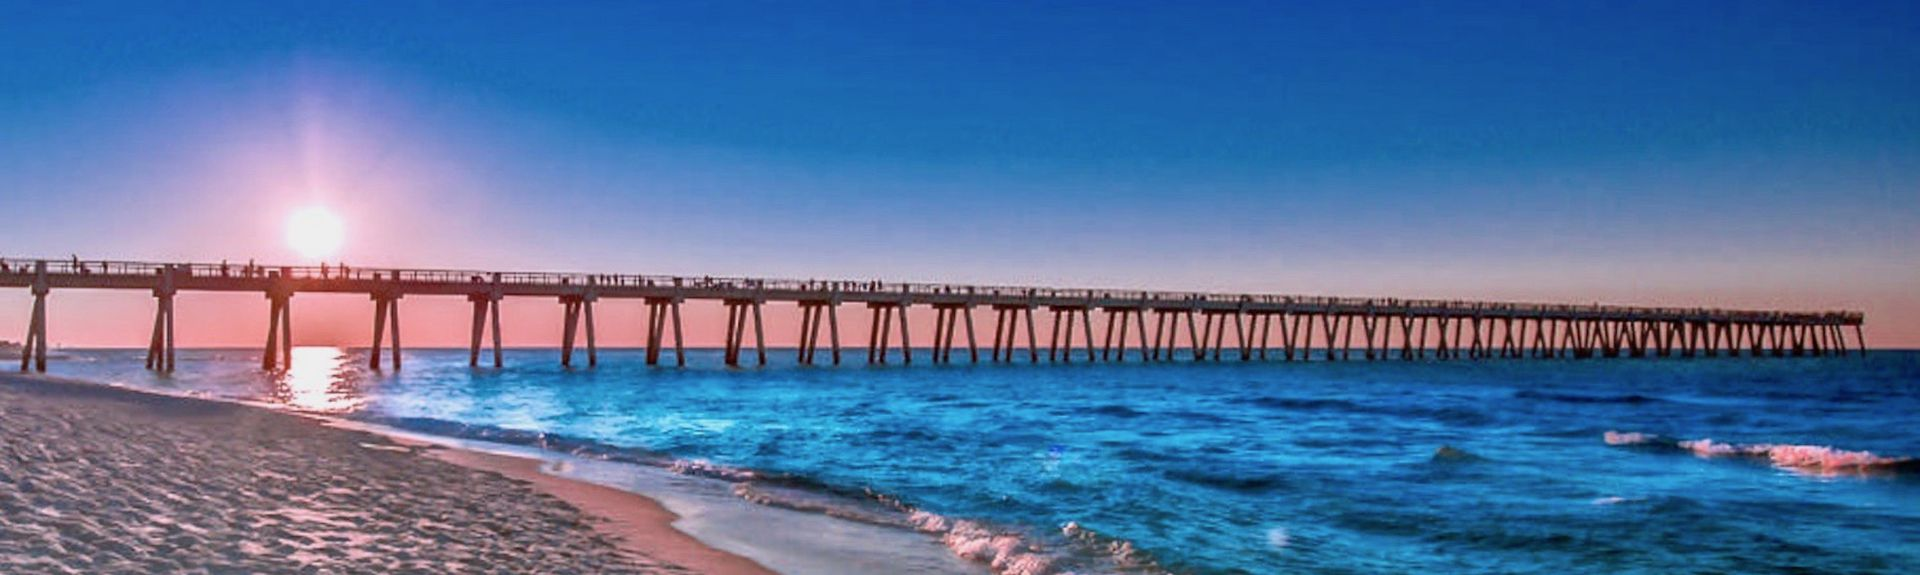 Navarre Beach, Navarre, Florida, United States of America